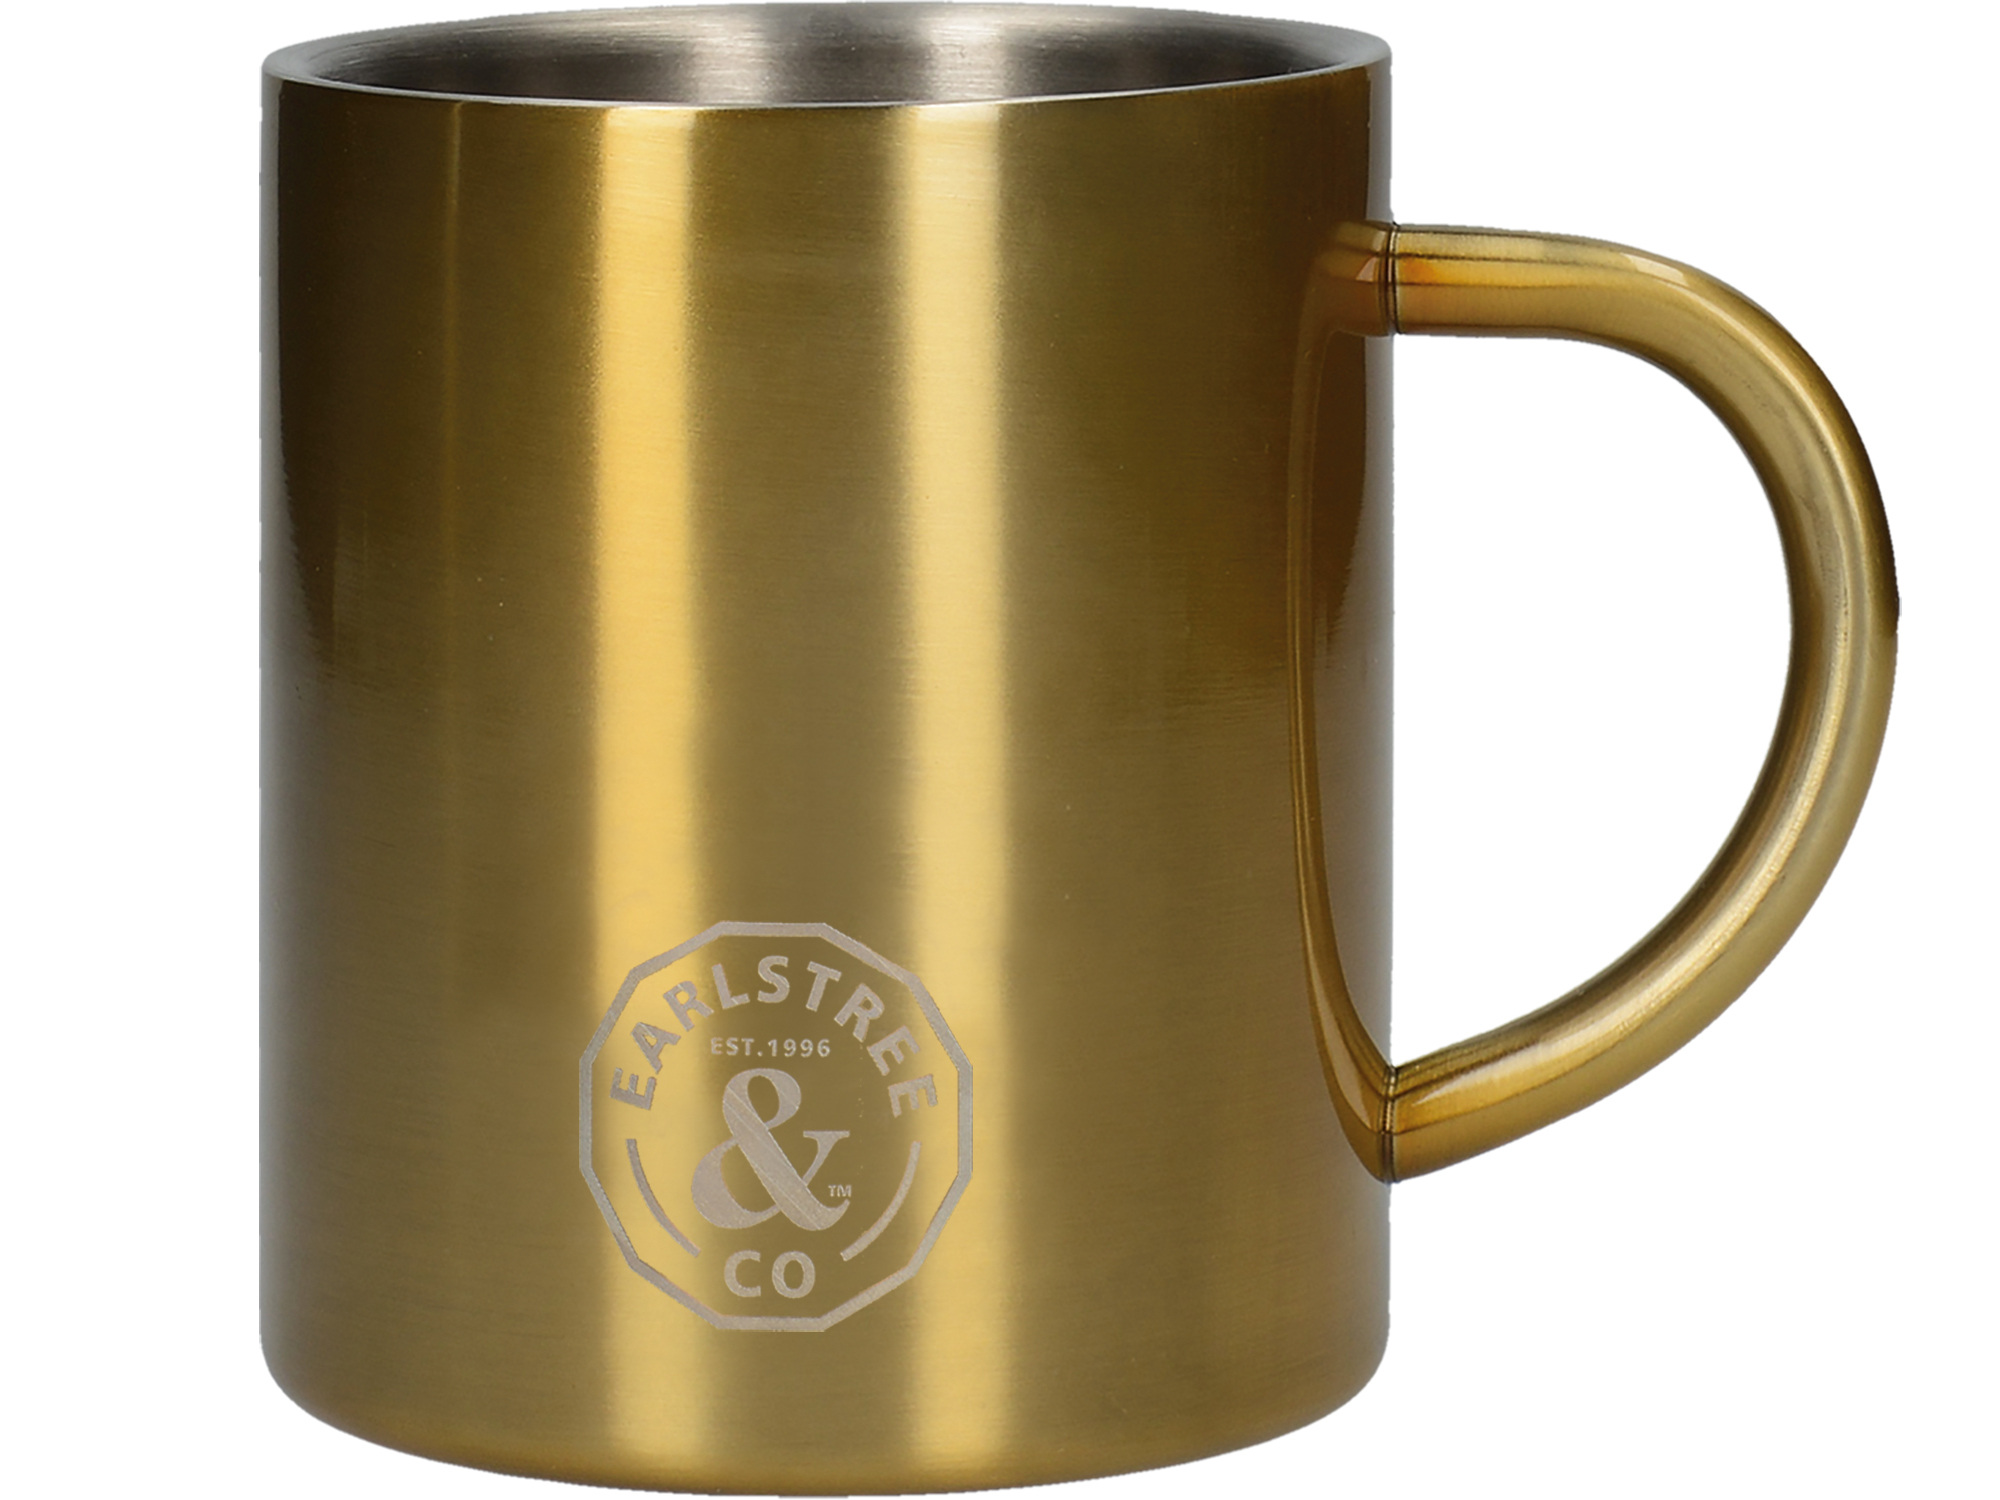 Creative Tops Earlstree & Co Small Stainless Steel Can Mug